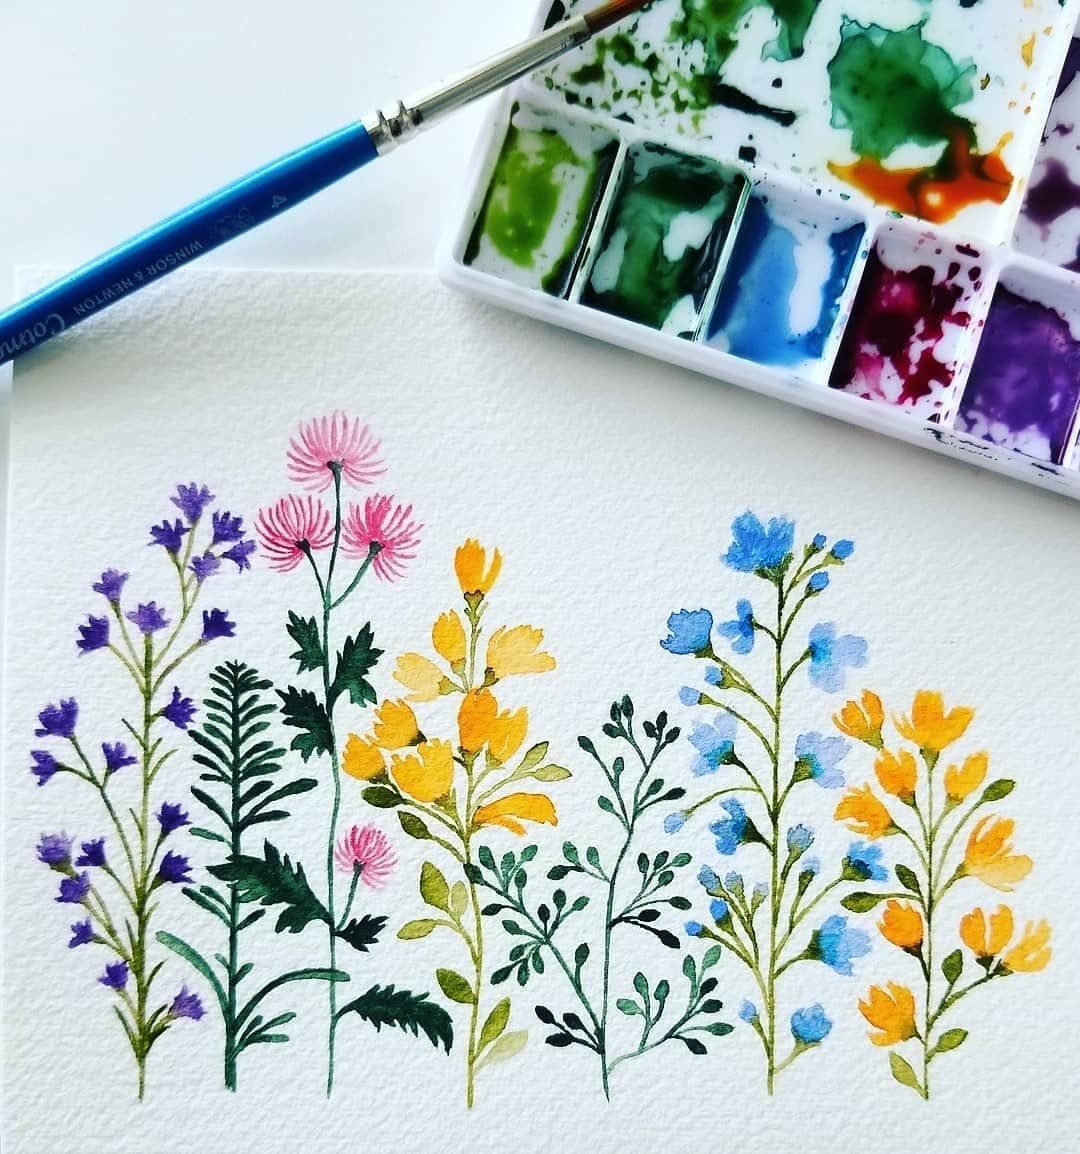 "TOP Watercolor Gallery on Instagram: ""Artist @ishajunedesigns - Spring #wildflowers"